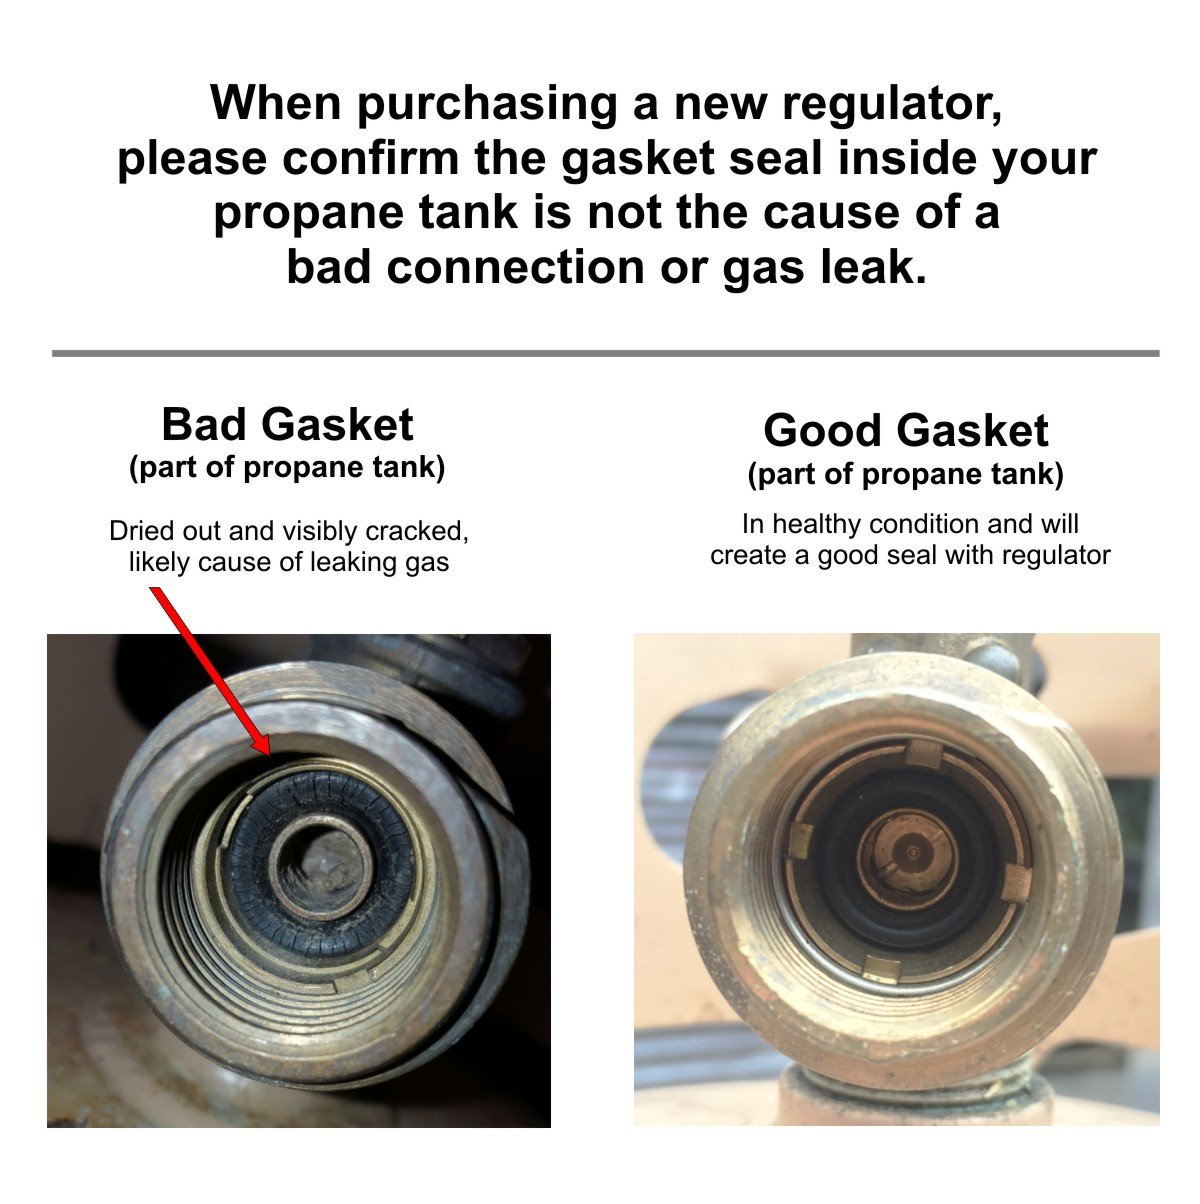 Weber Gas Grill Parts >> Weber 99281 Gas Grill Propane Regulator 41 Inch Hose for Genesis 300 Series Grills (2007-2010 ...